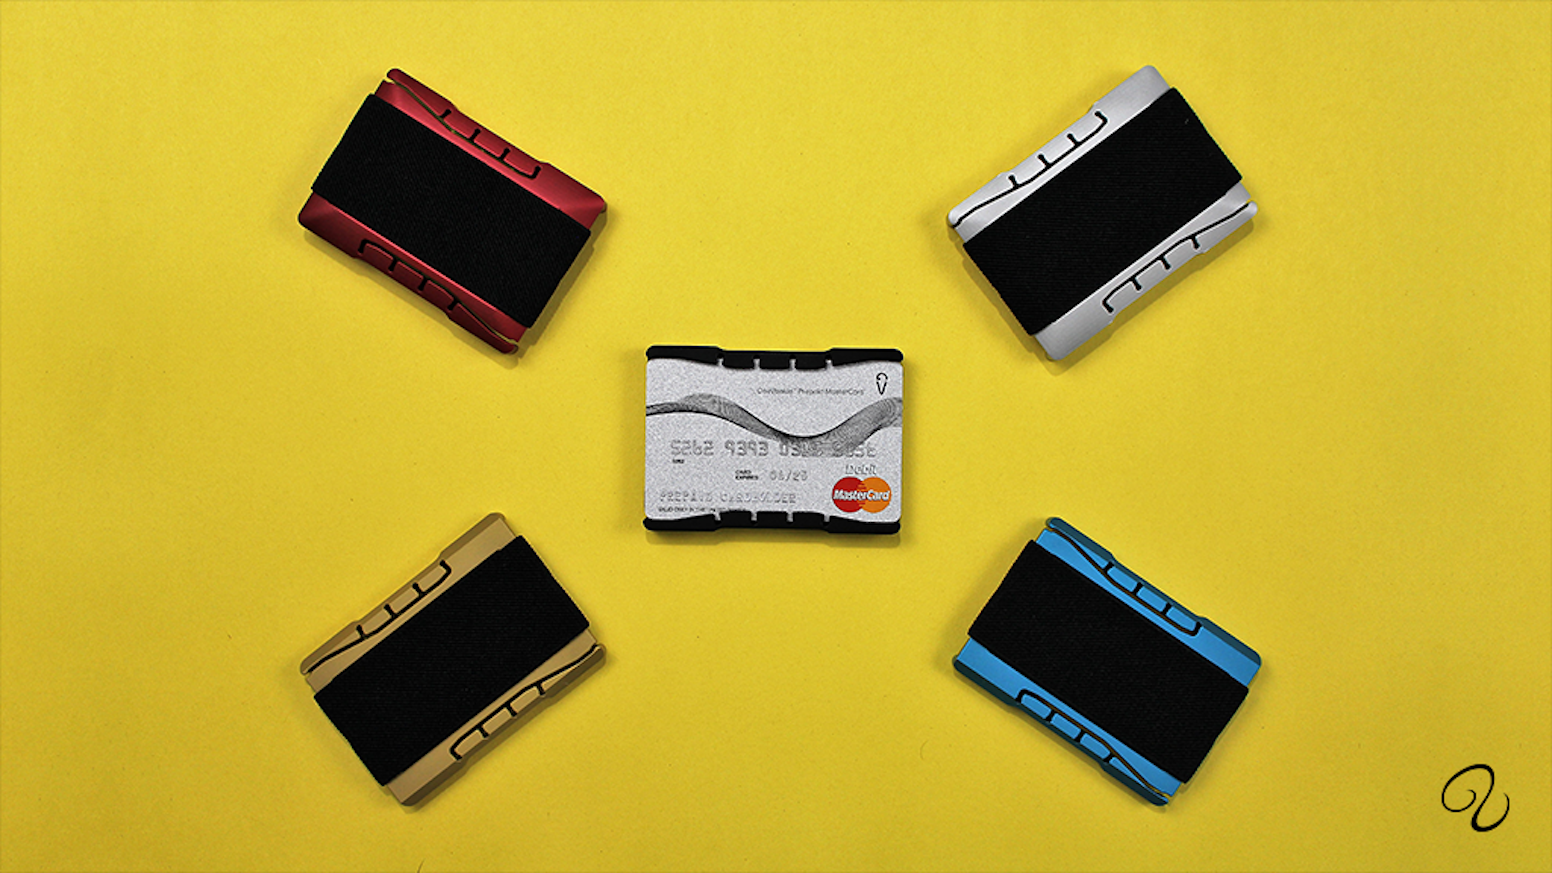 5b59421d4f2 The Clique wallets store your cards unlike any other wallet. Beautifully  engineered with superior functionality